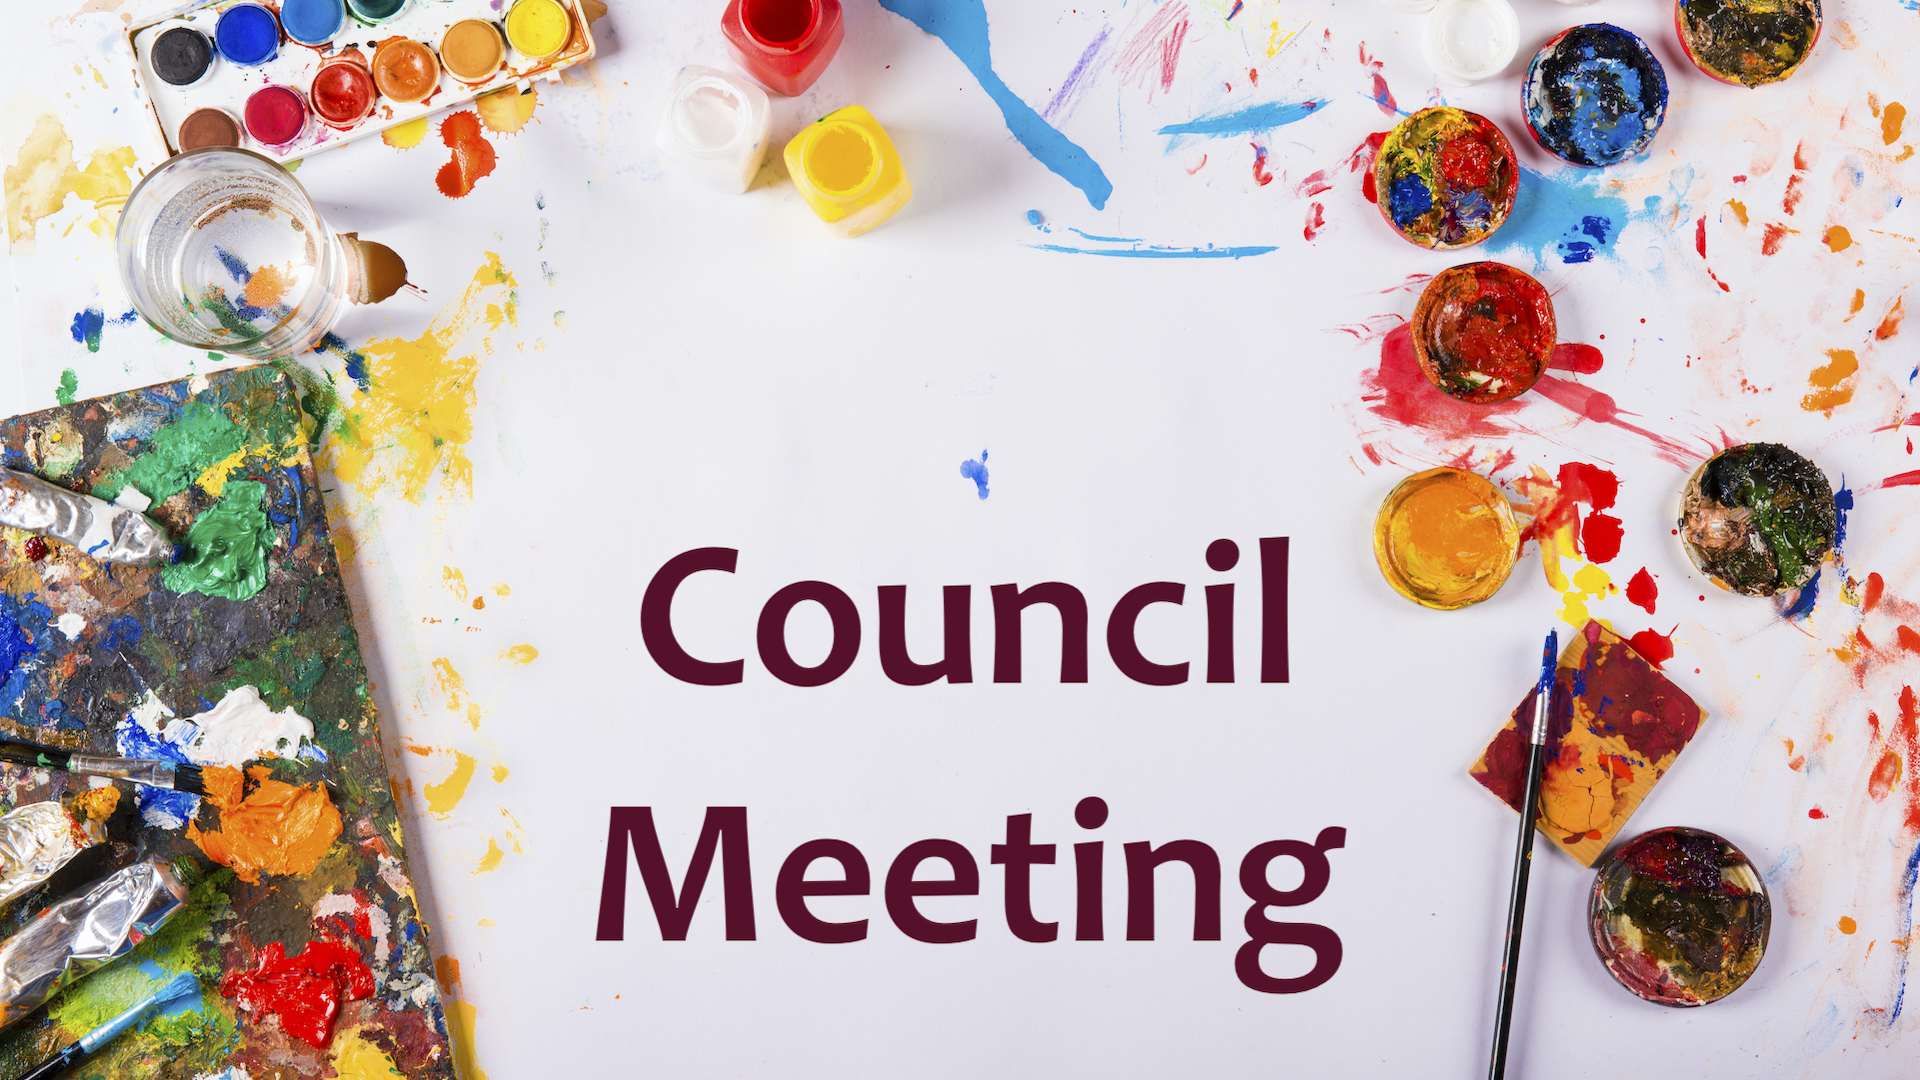 A Council meeting